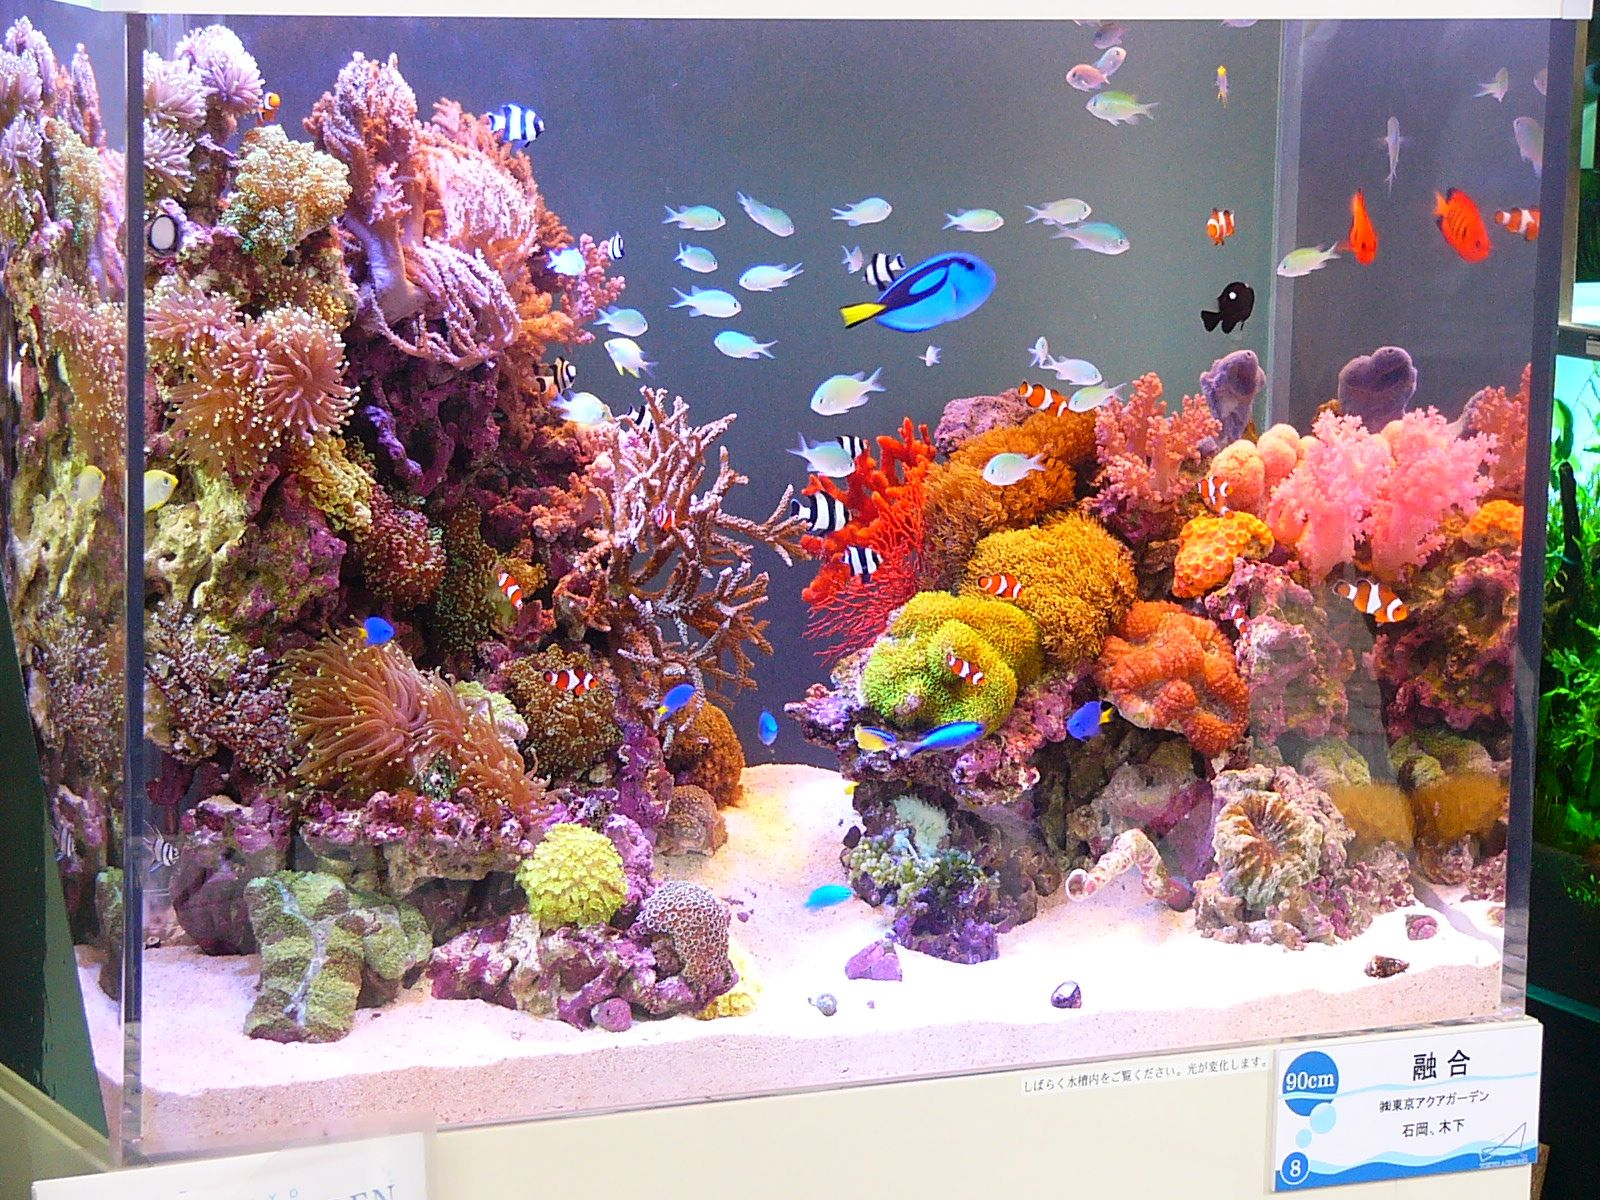 Saltwater aquarium fish tanks images for Saltwater fish tank